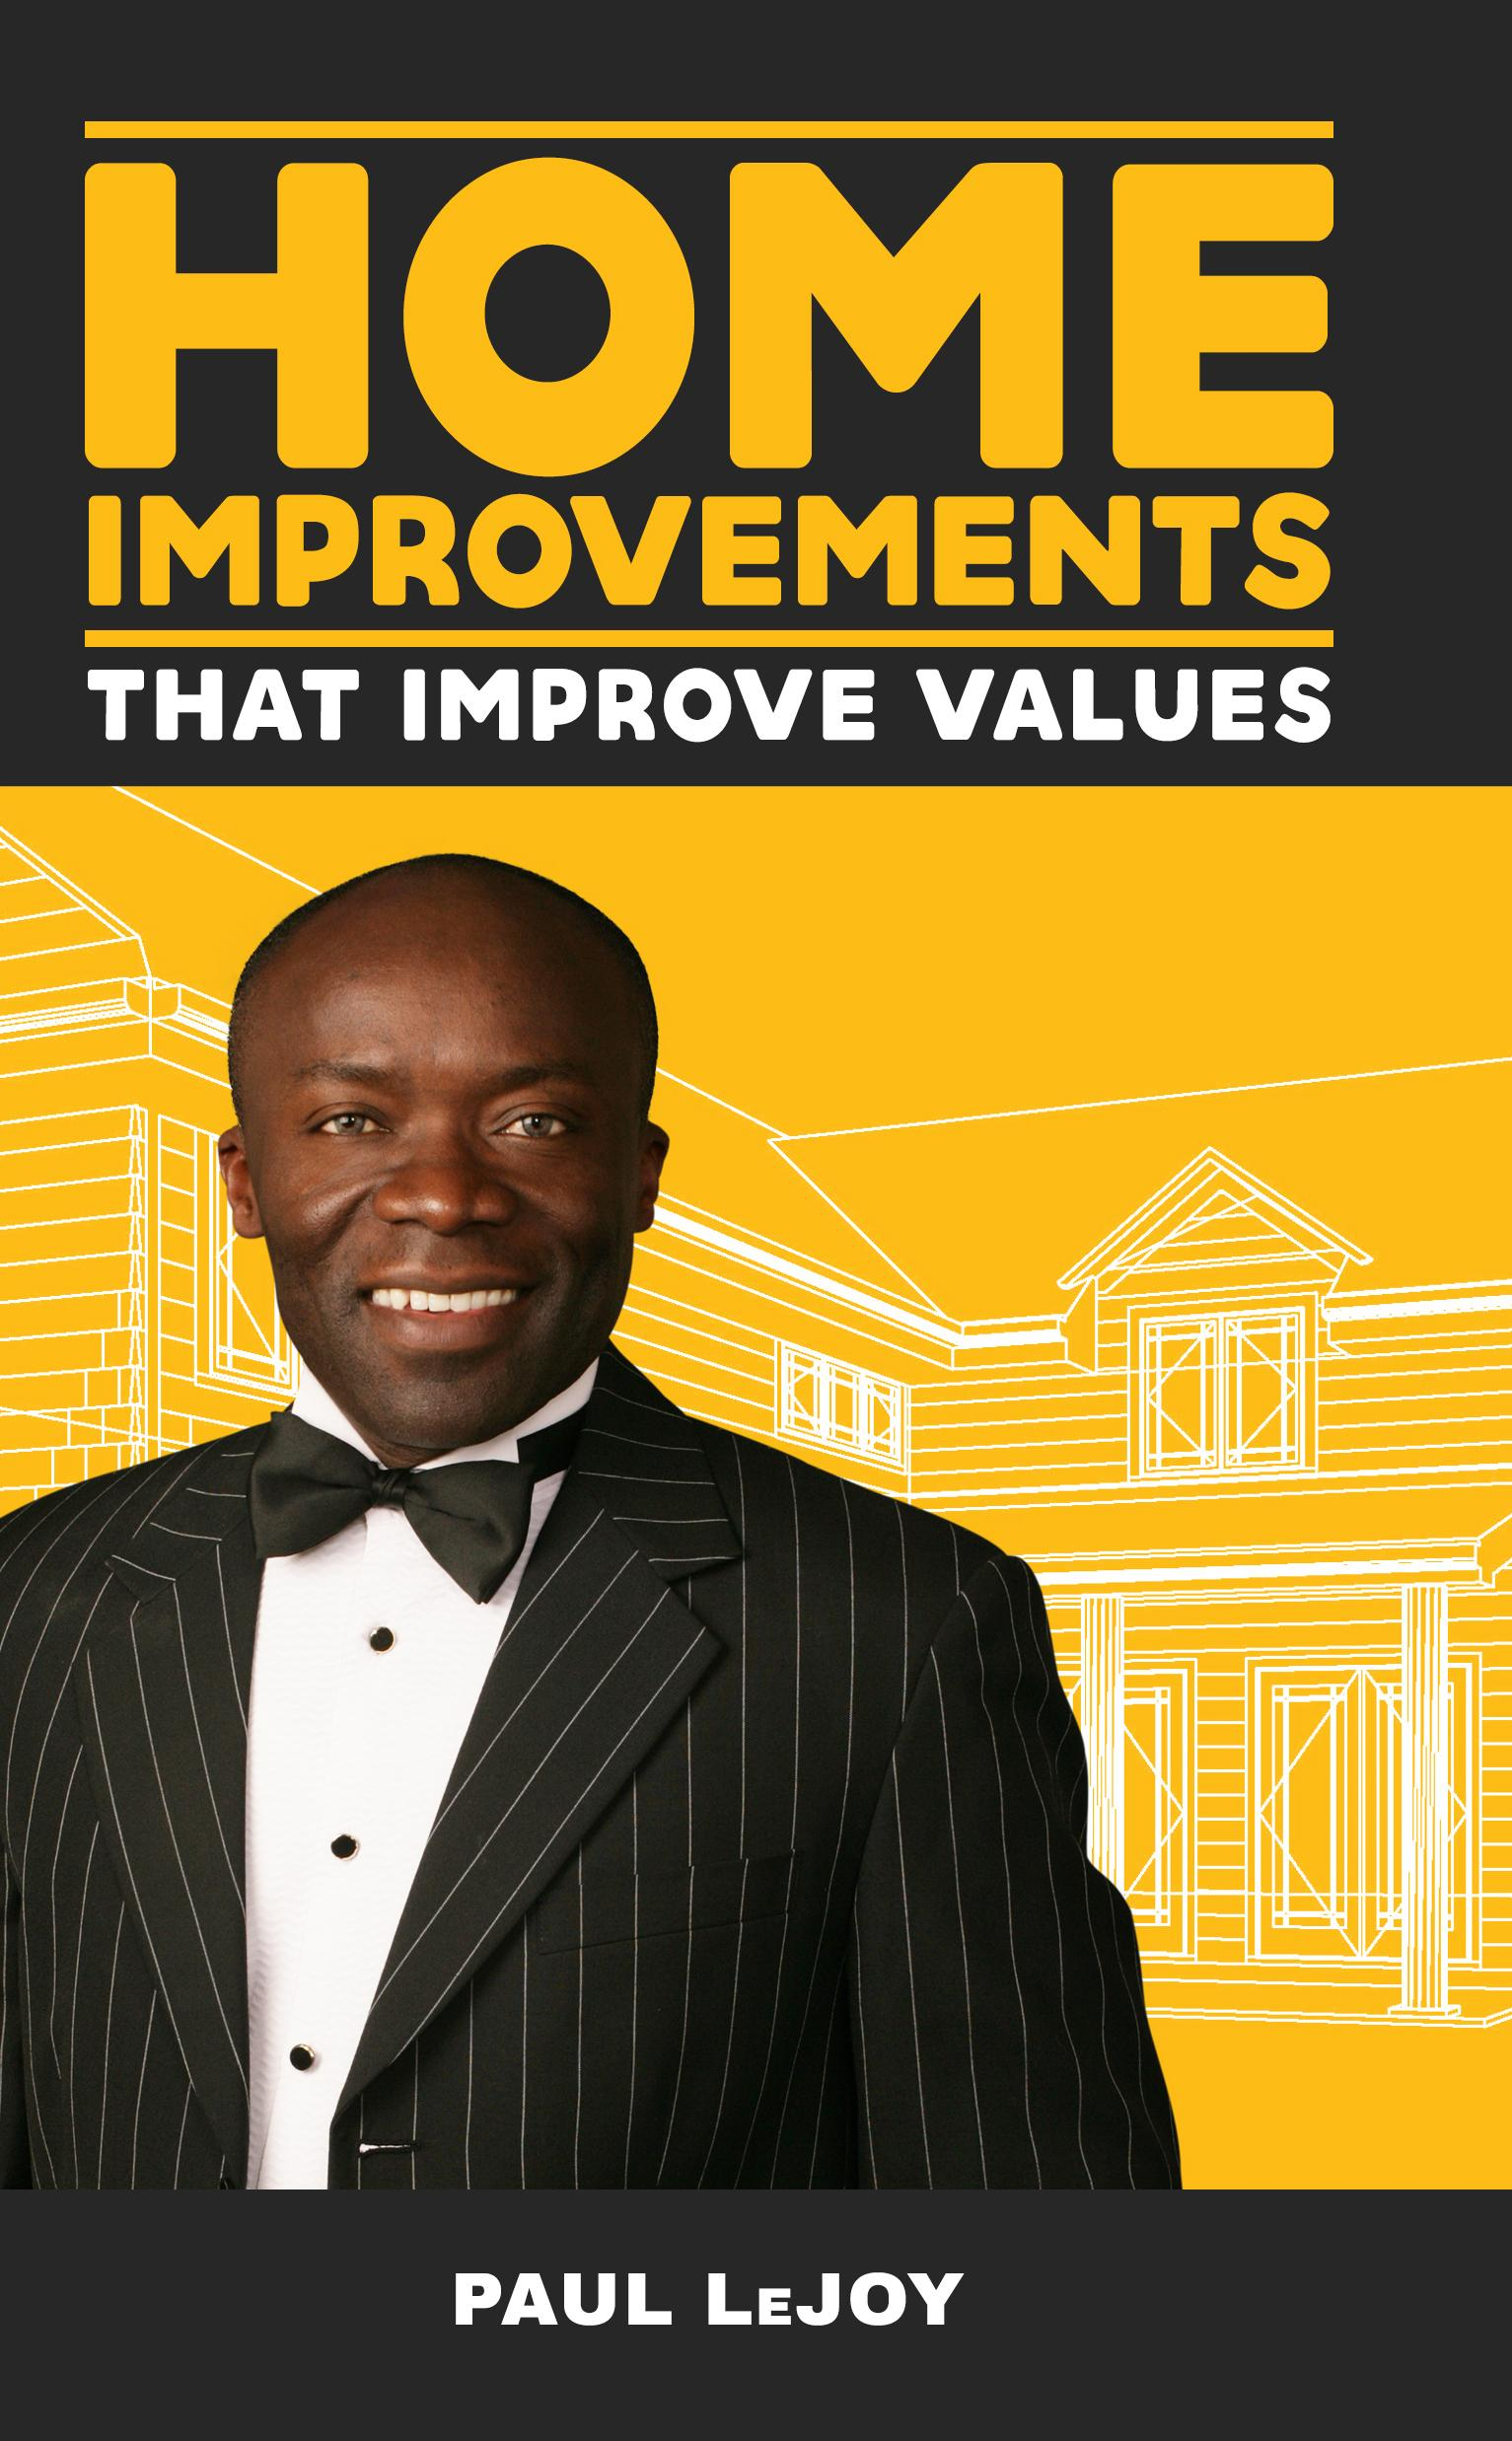 Home Improvements That Improve Values